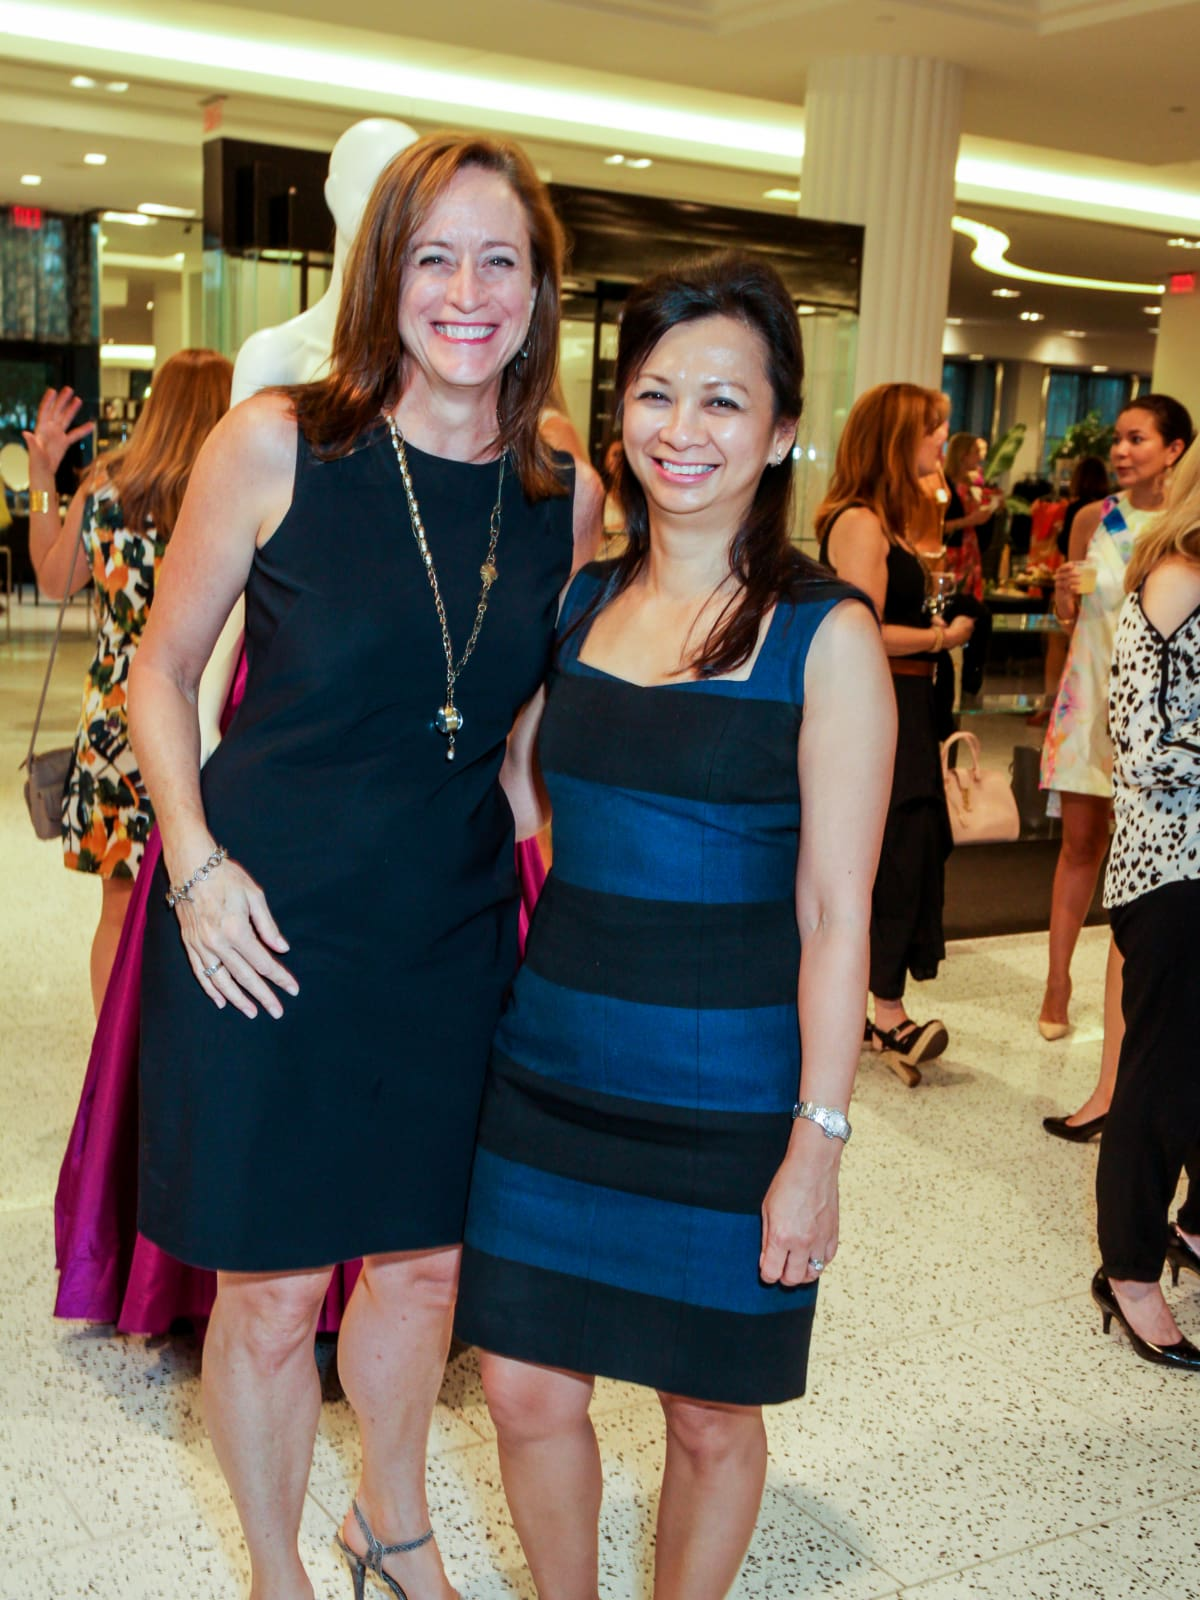 Houston, Ellevate event at Tootsies, August 2015, Ann-Michele Bowlin, Trinh Abrell